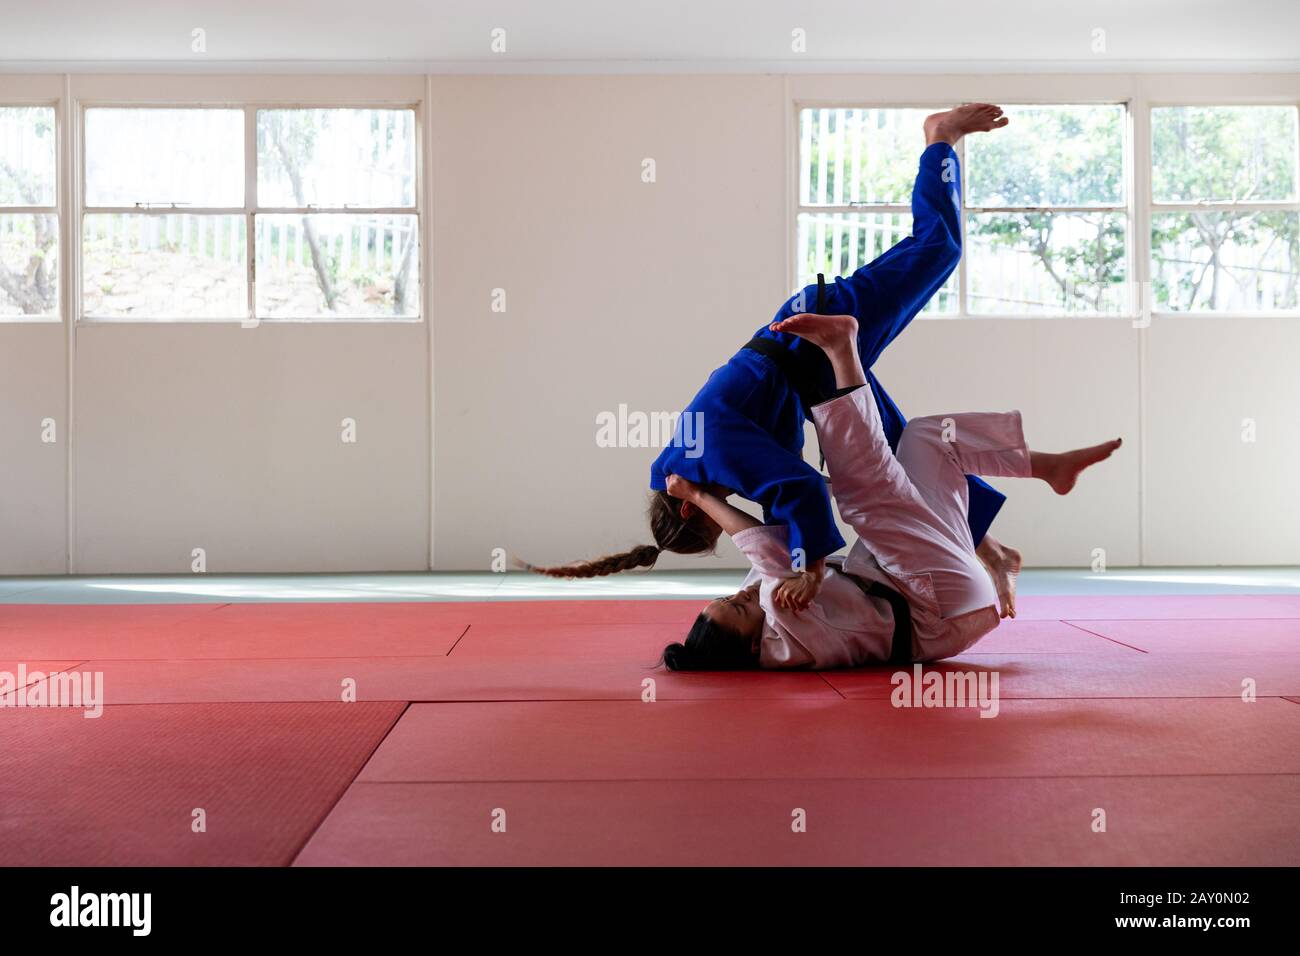 Judokas practicing judo during a sparring in a gym Stock Photo